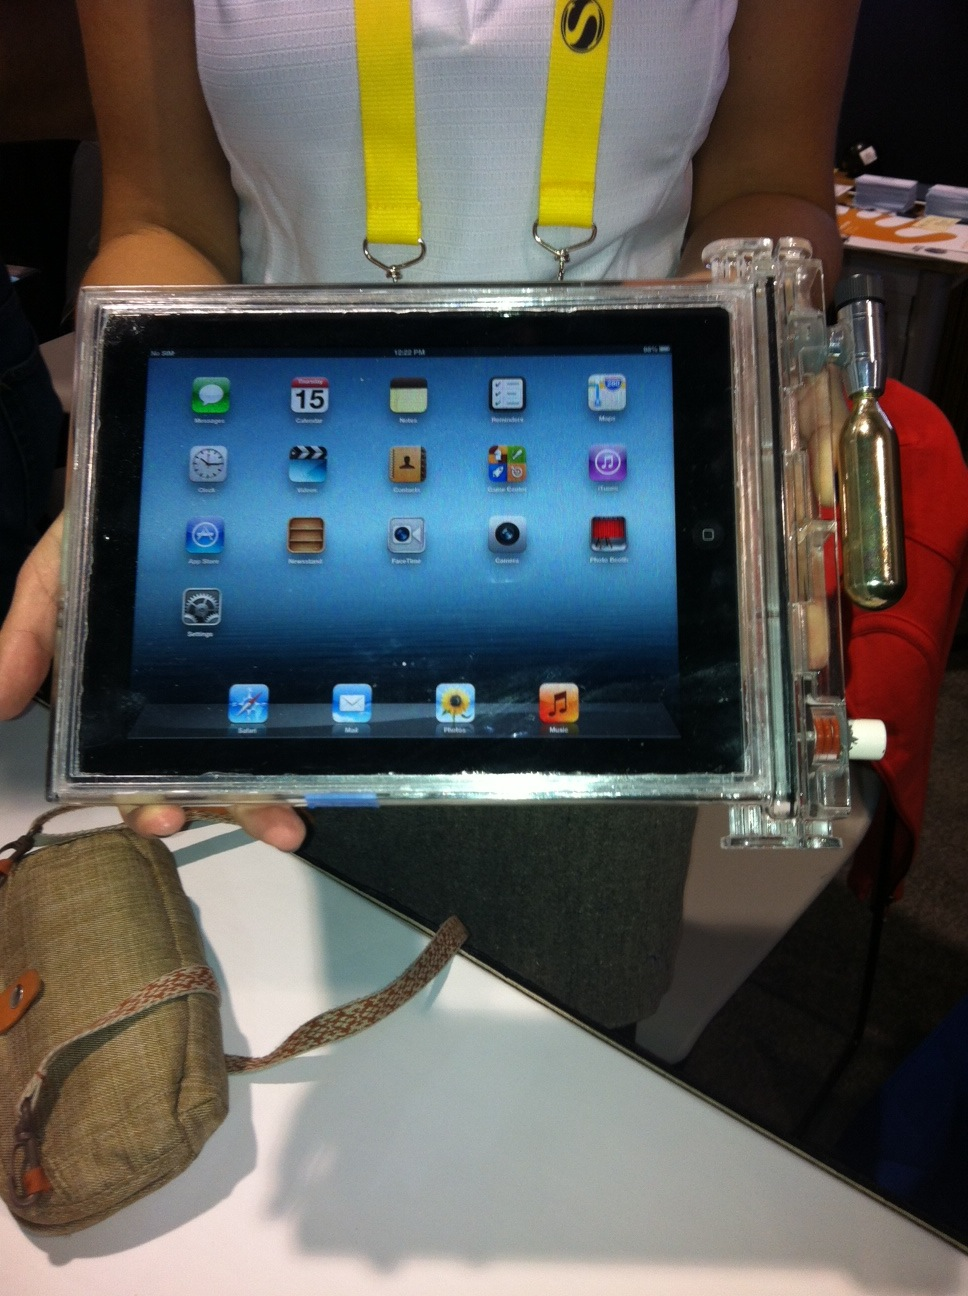 DEMA Show 2012: New Underwater iPad Housing Introduced At DEMA 2012 2